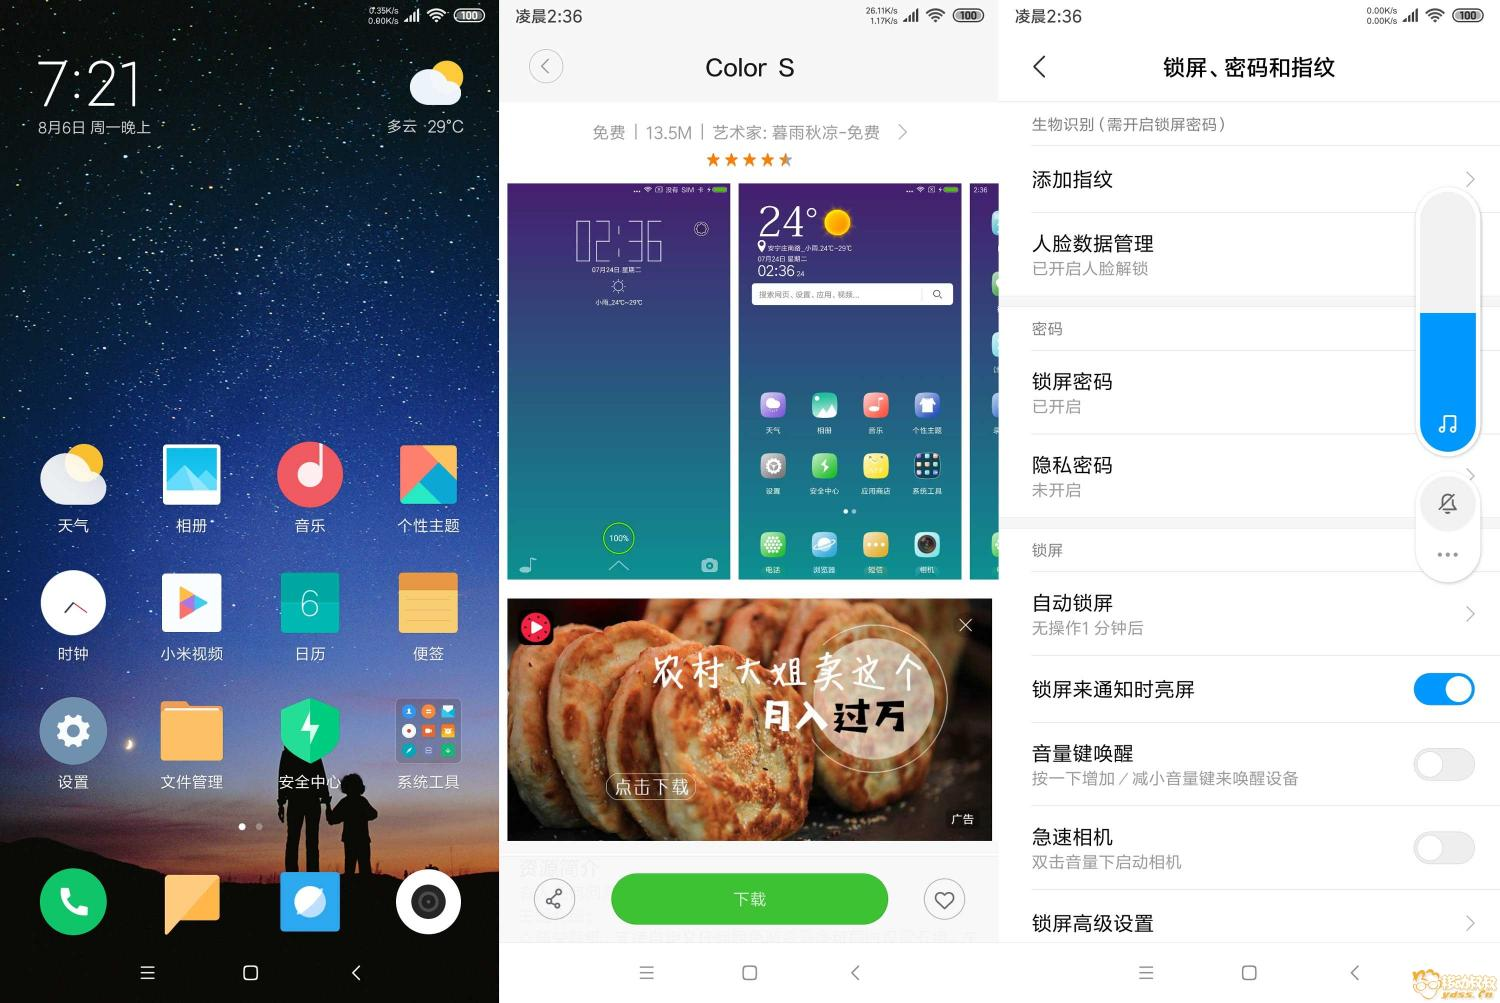 Screenshot_2018-08-06-19-21-17-659_com.miui.jpg